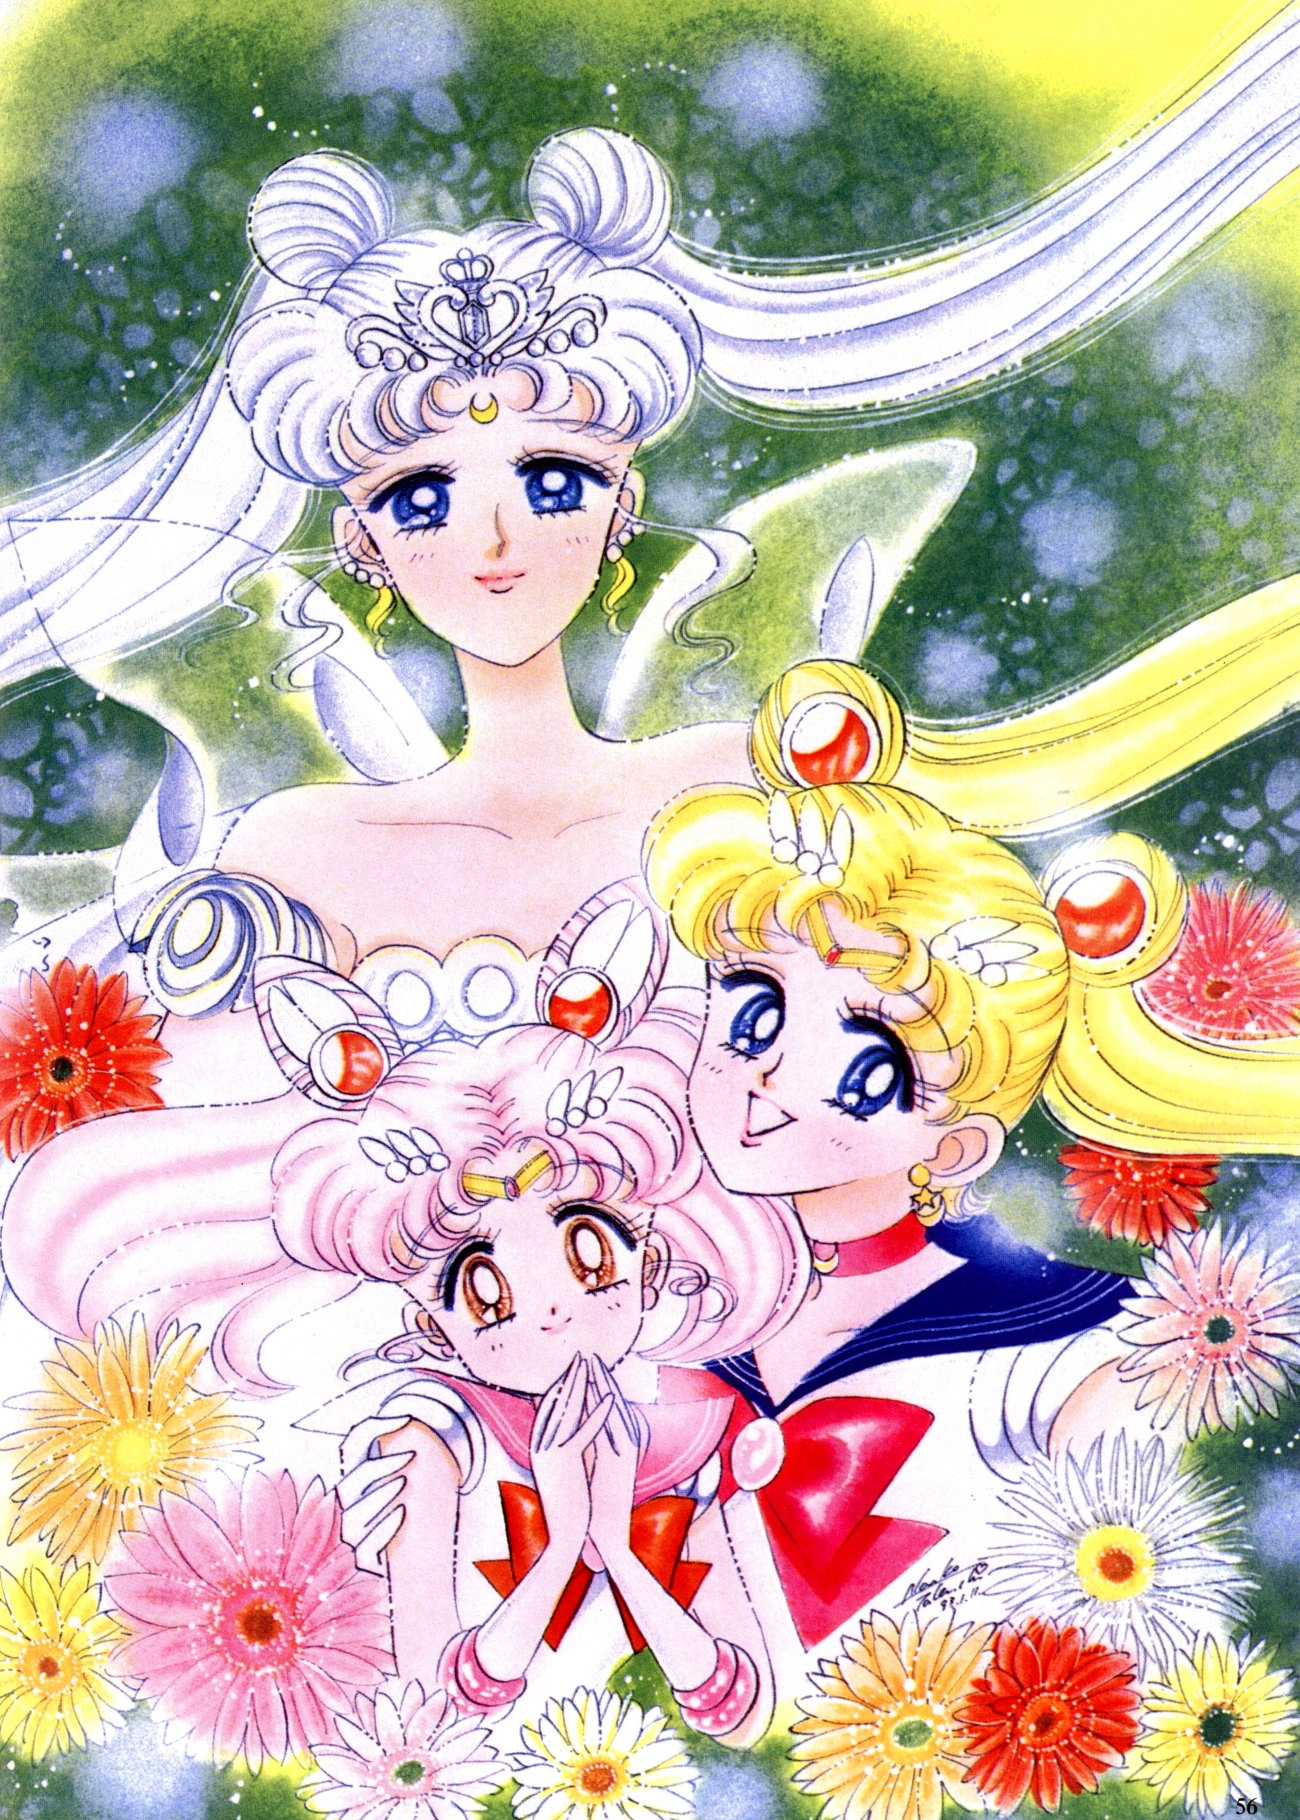 Usagi Tsukino has pink hair? A Sailor Moon mystery!